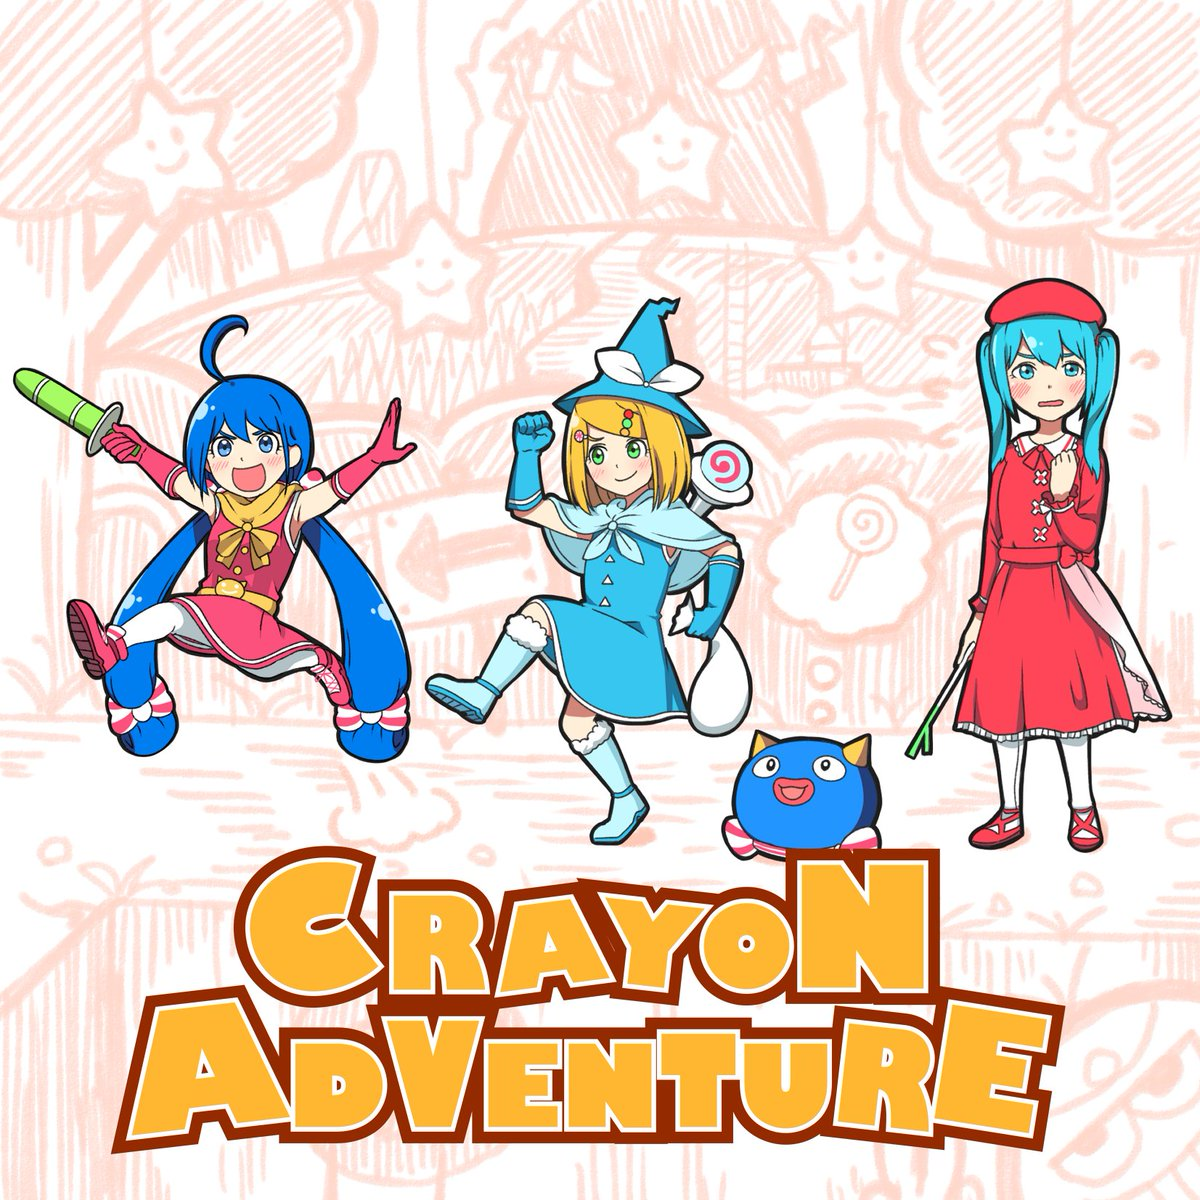 CRAYON ADVENTURE (album)